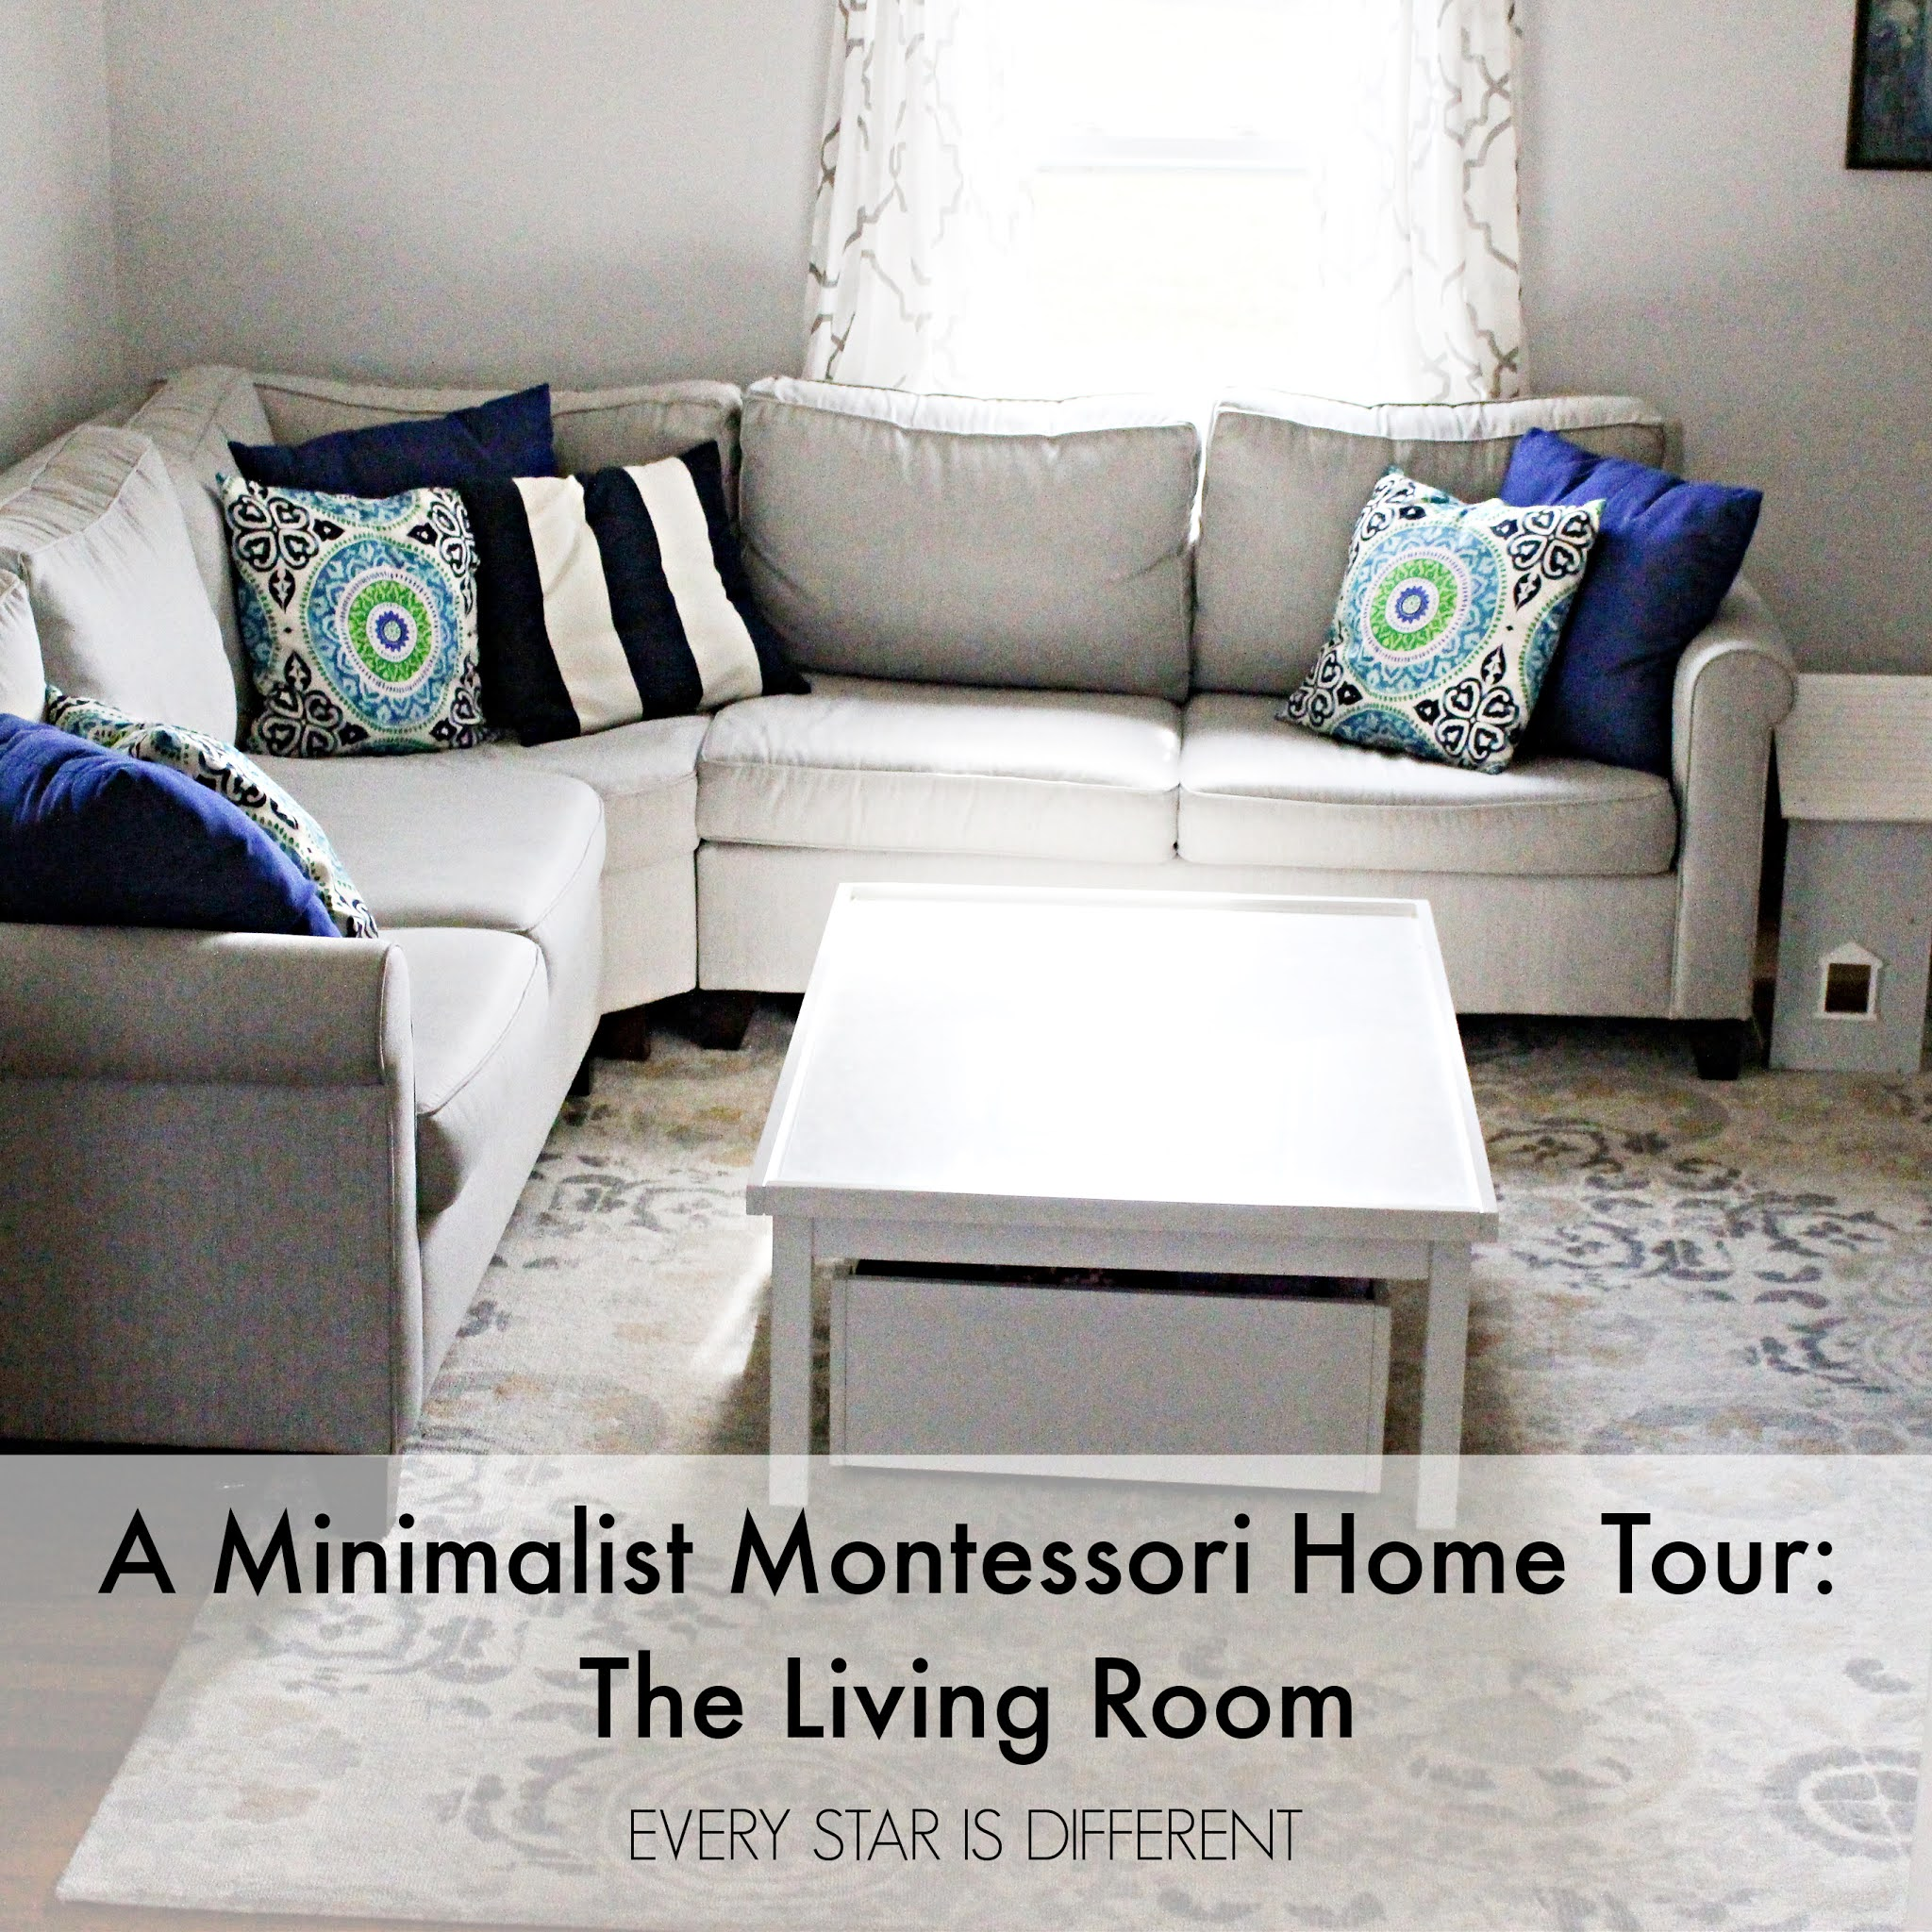 A Minimalist Montessori Home Tour: The Living Room